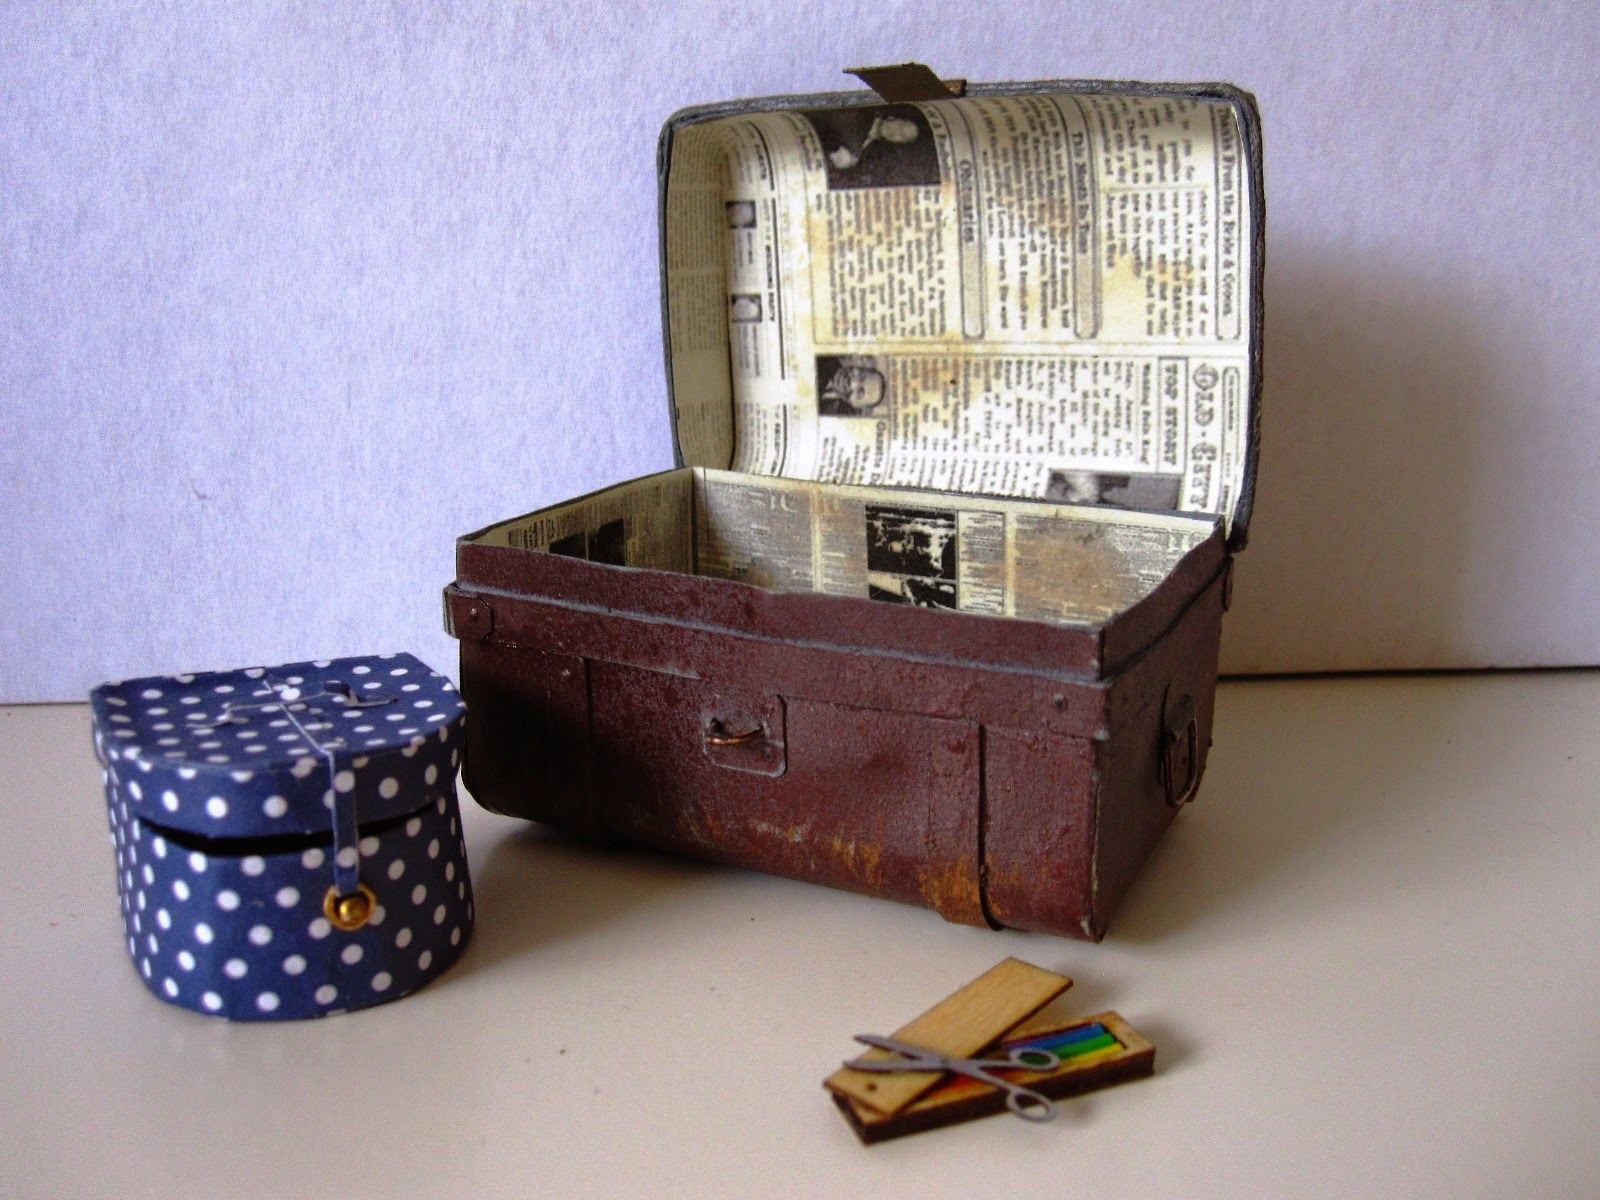 Miniature blue and white polka dot hat box, vintage tin trunk and crayon box with scissors.